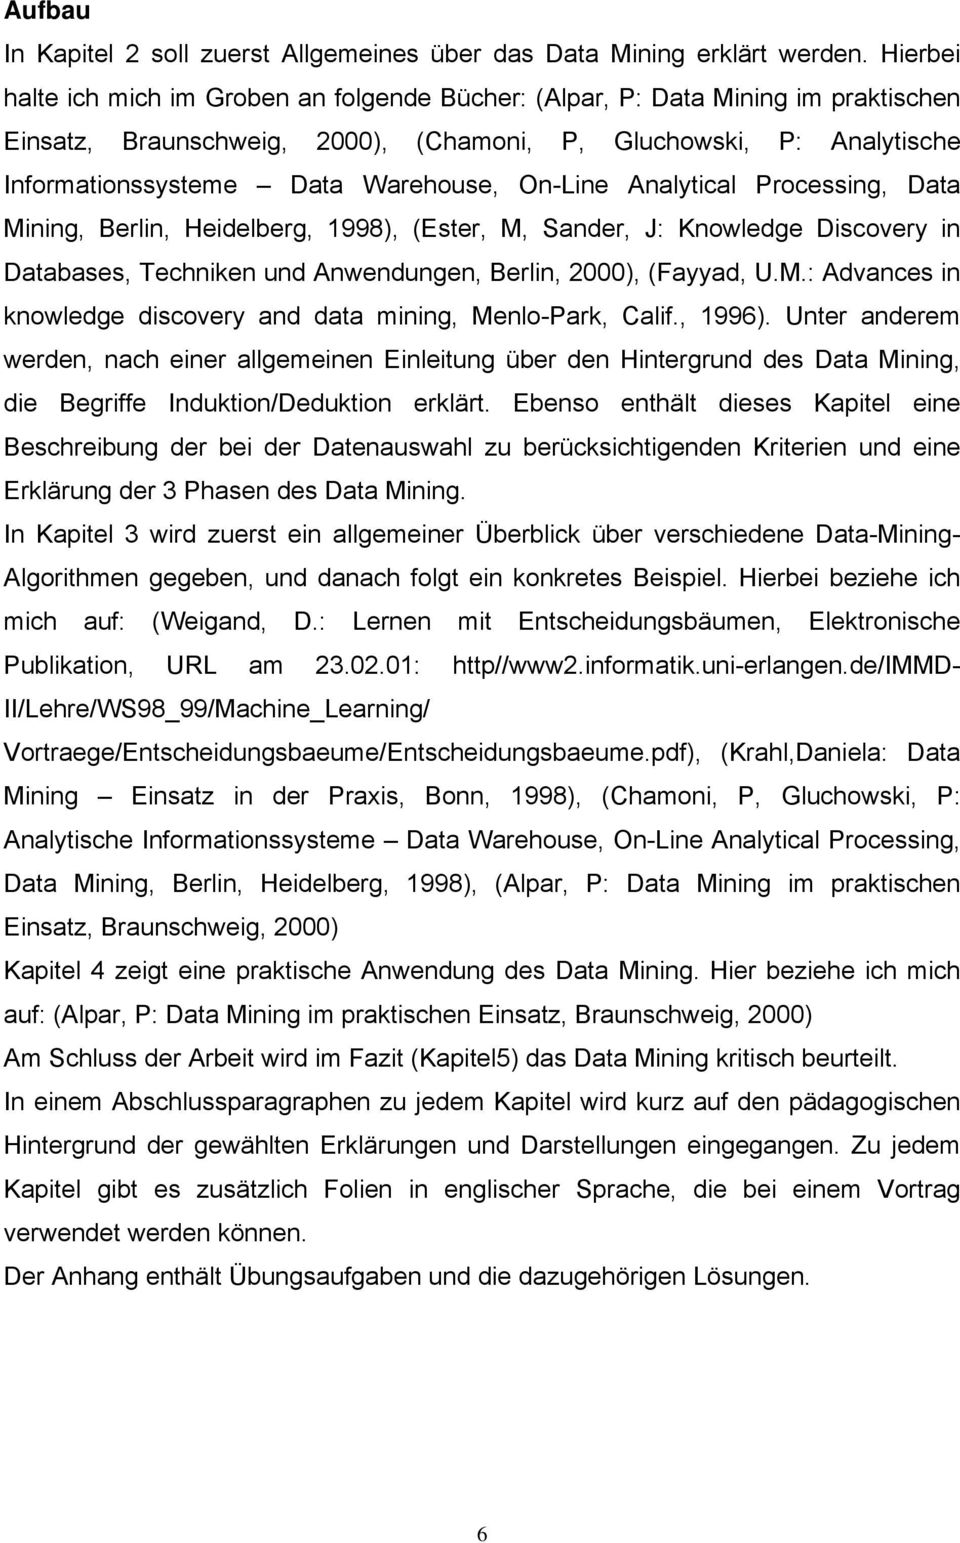 On-Line Analytical Processing, Data Mining, Berlin, Heidelberg, 1998), (Ester, M, Sander, J: Knowledge Discovery in Databases, Techniken und Anwendungen, Berlin, 2000), (Fayyad, U.M.: Advances in knowledge discovery and data mining, Menlo-Park, Calif.